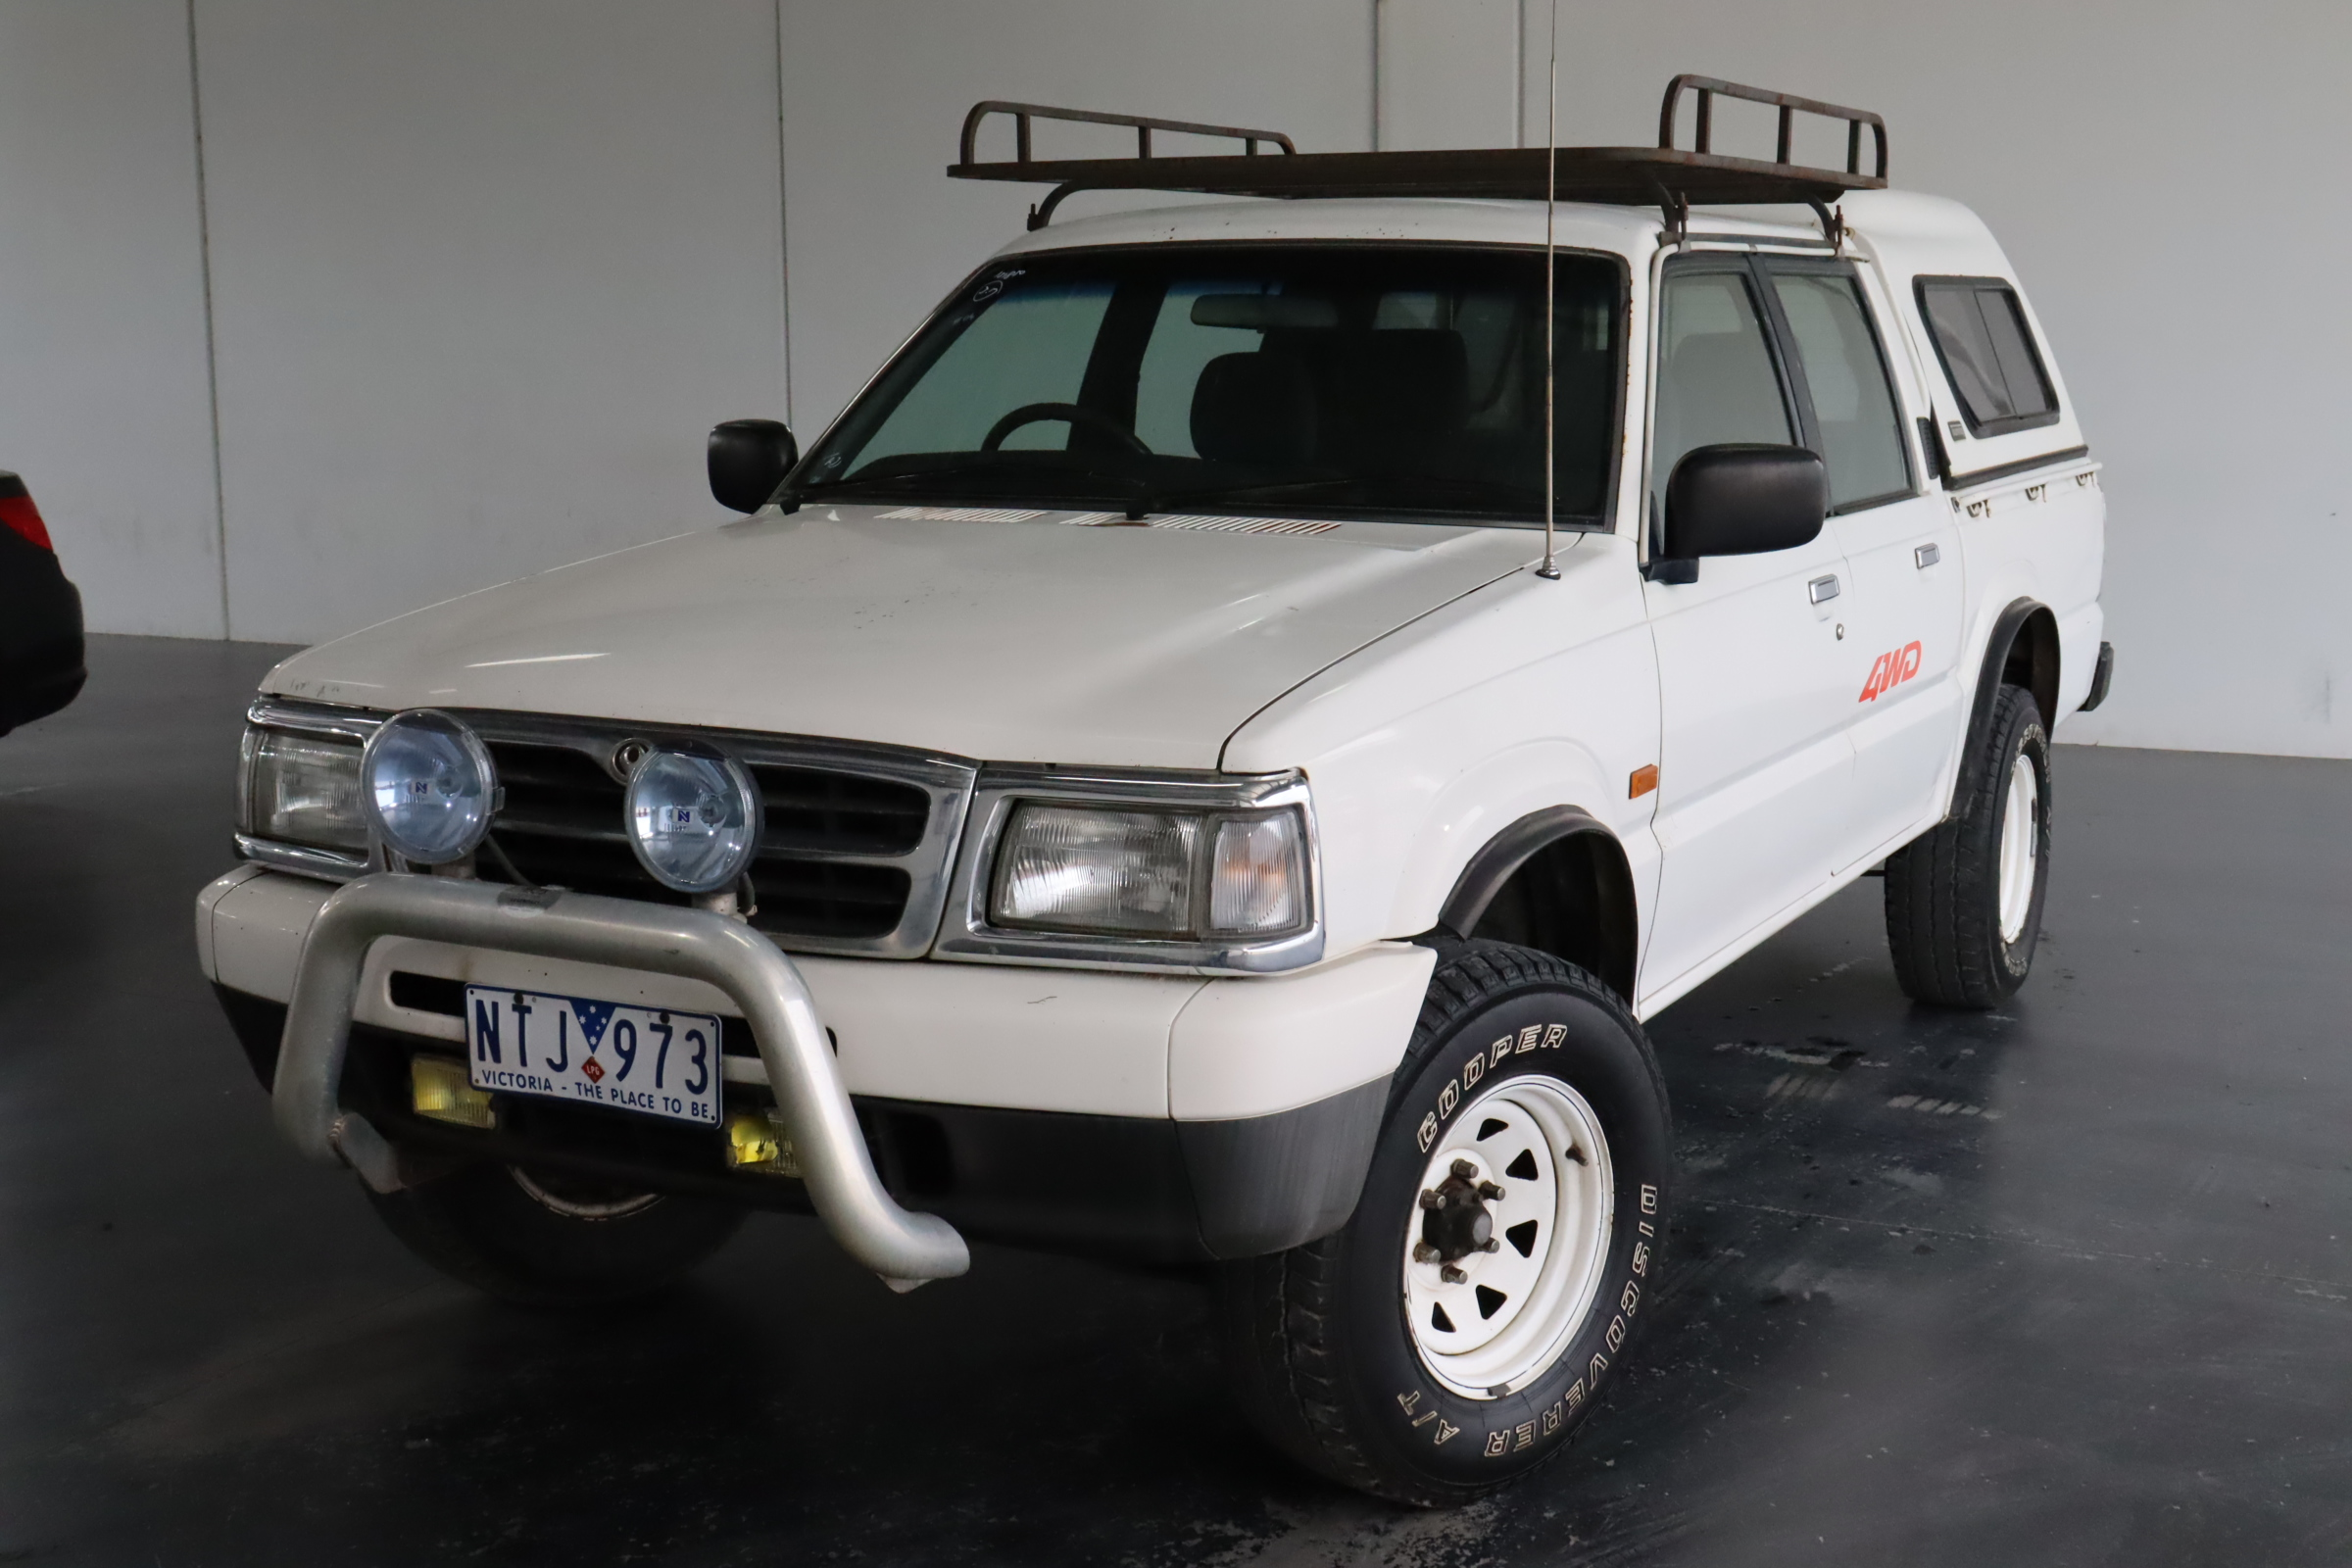 1996 Mazda B2600 Automatic Ute (Holden V6 Conversion)